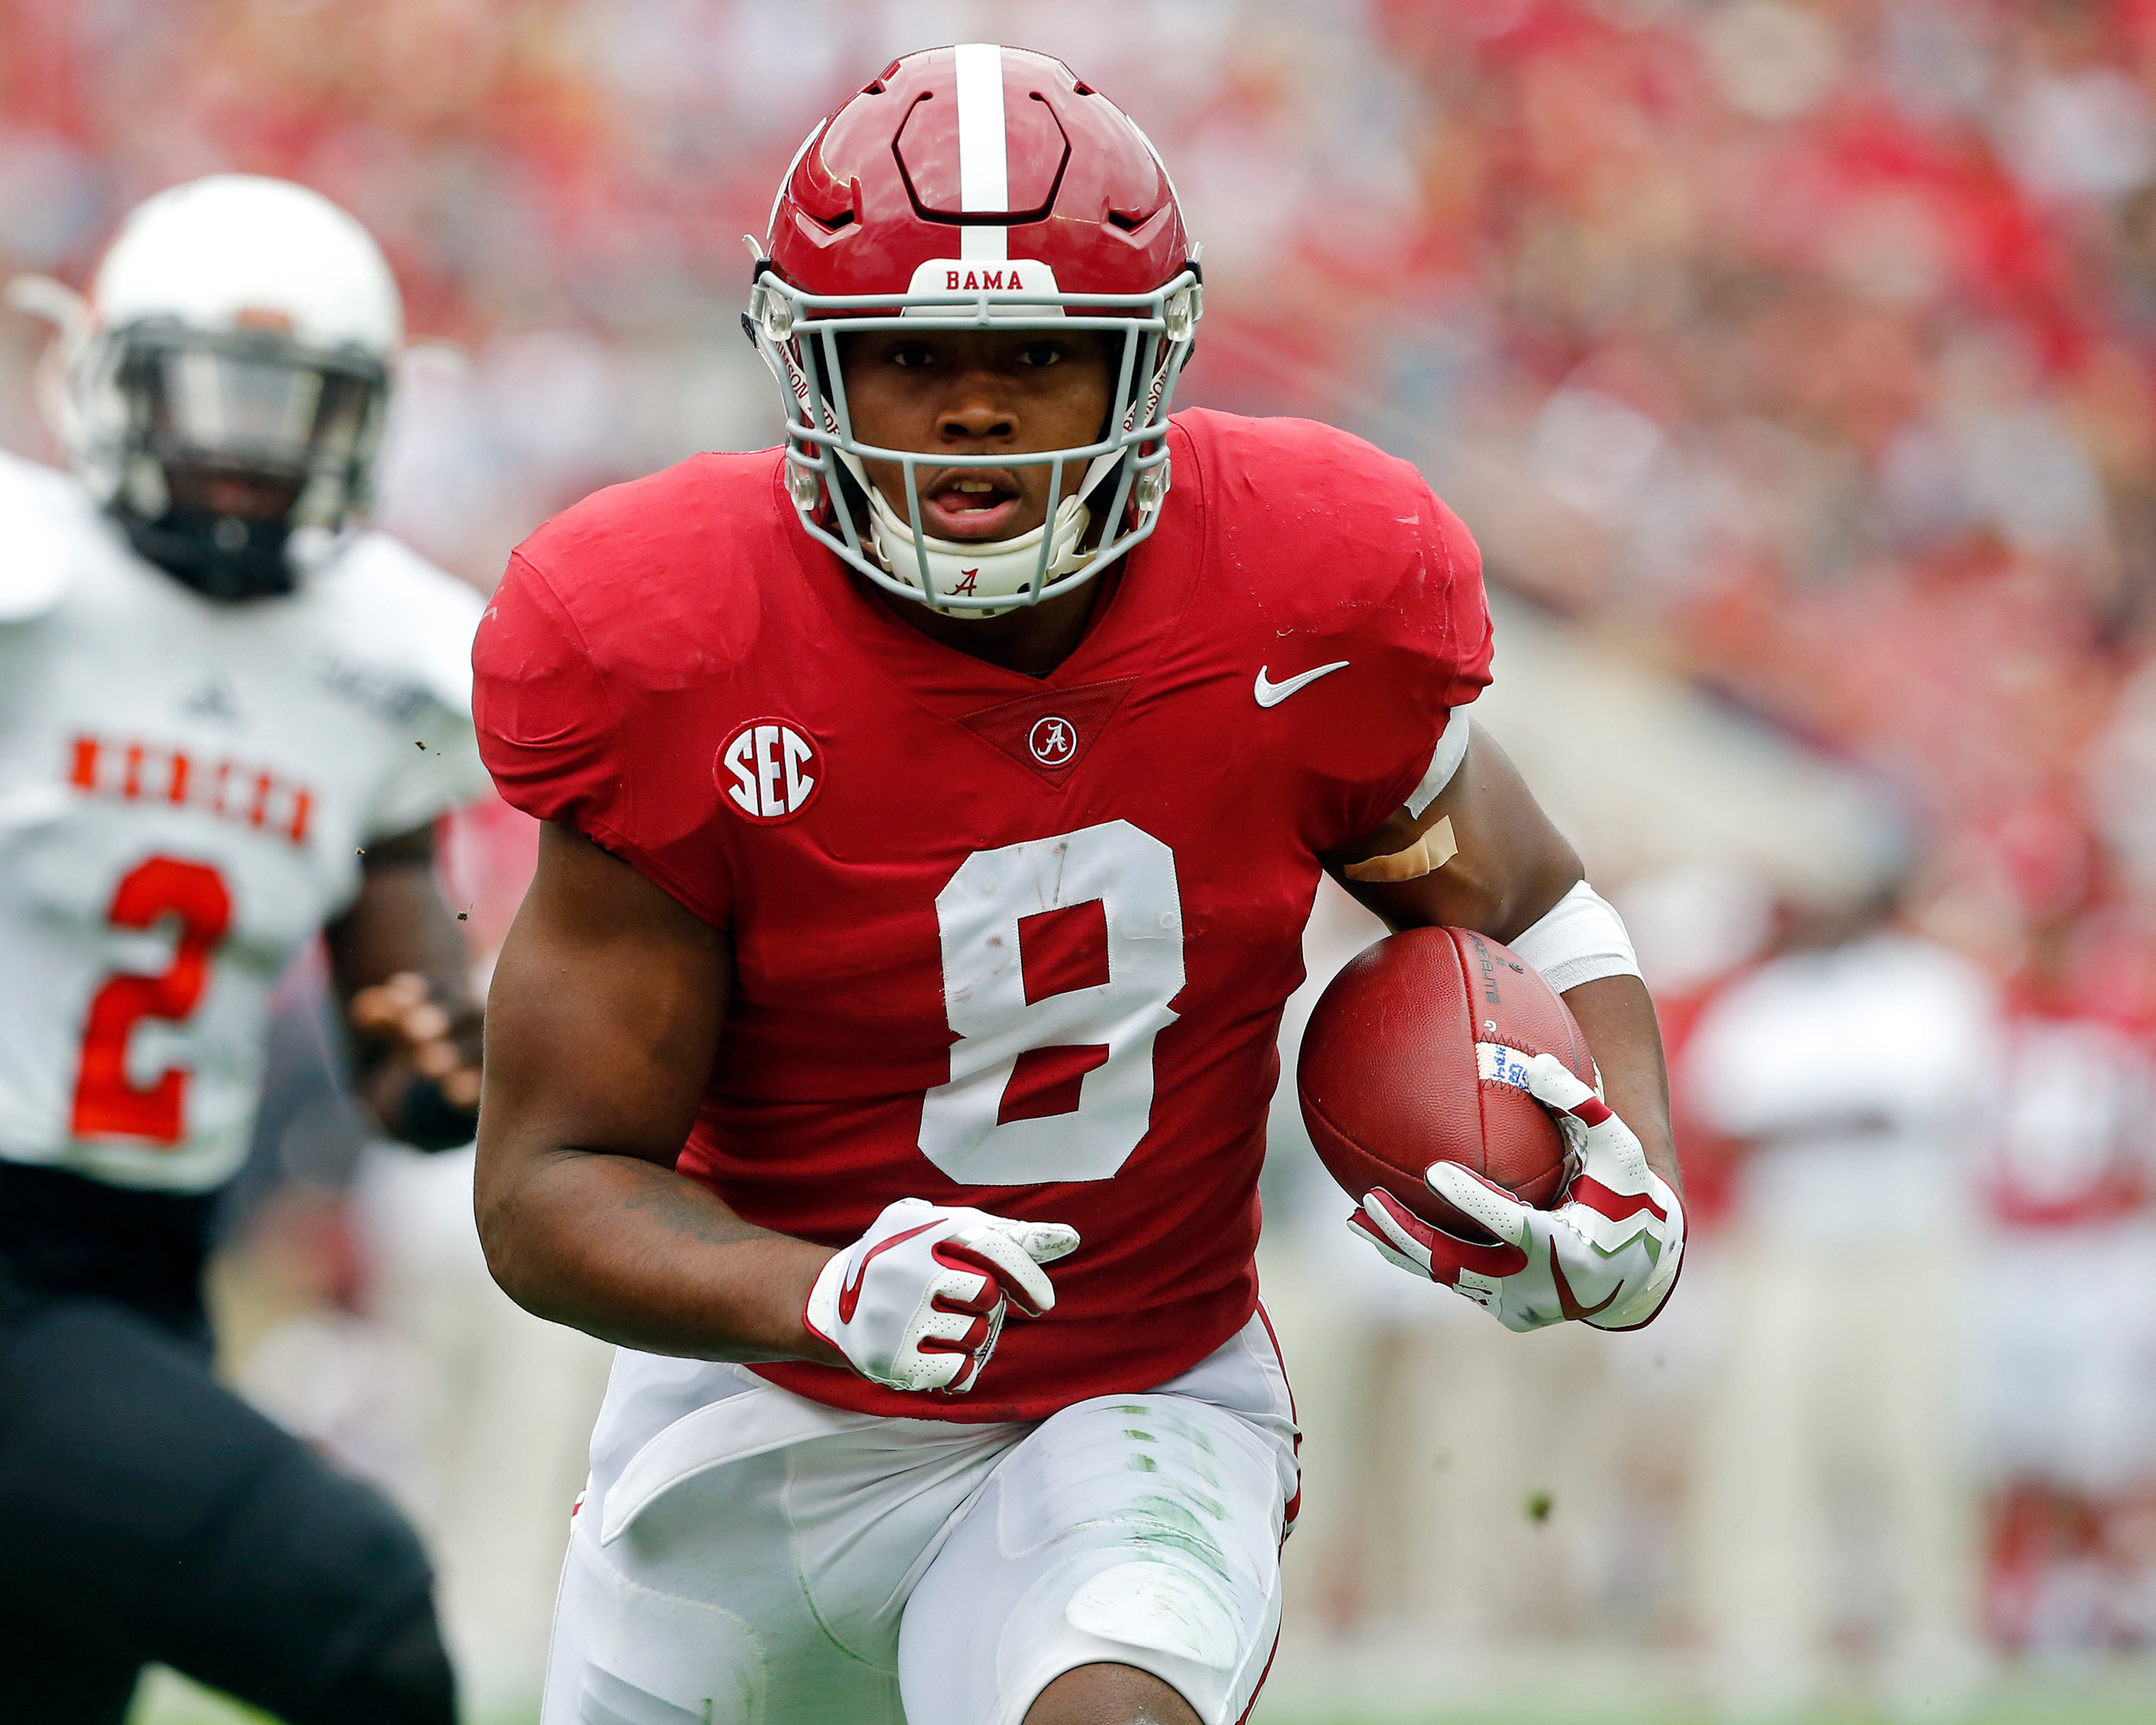 Alabama Crimson Tide running back Josh Jacobs (8) rushes for yardage during the 1st half of the game between the Mercer Bears and the University of Alabama Crimson Tide at Bryant-Denny Stadium in Tuscaloosa, Al on 11/18/2017.